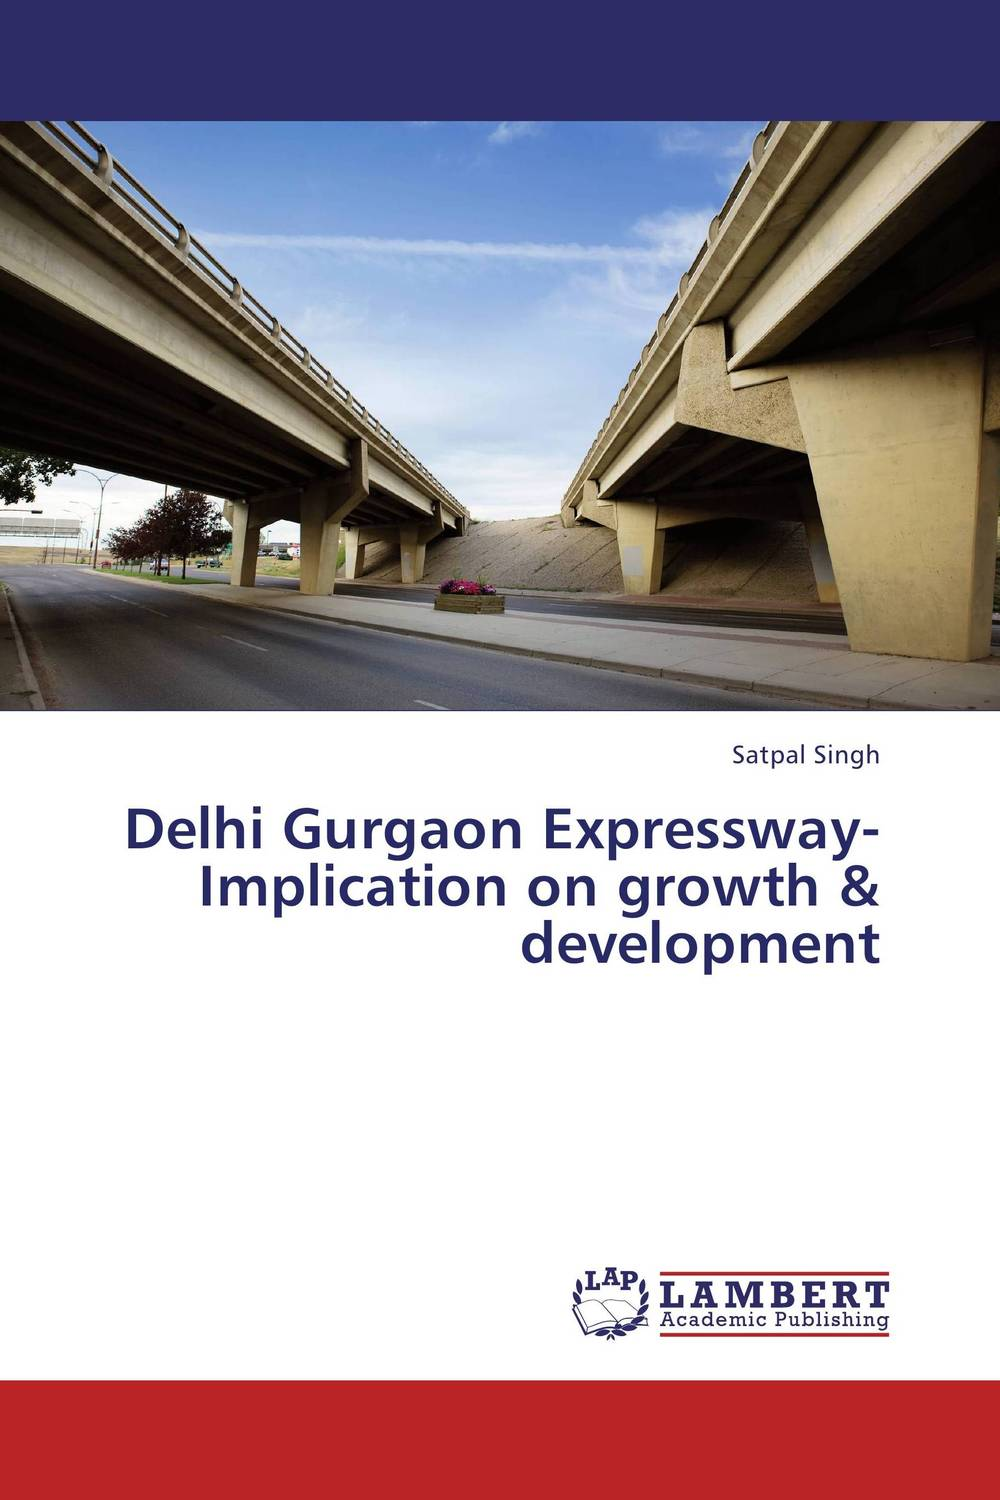 Delhi Gurgaon Expressway-Implication on growth & development